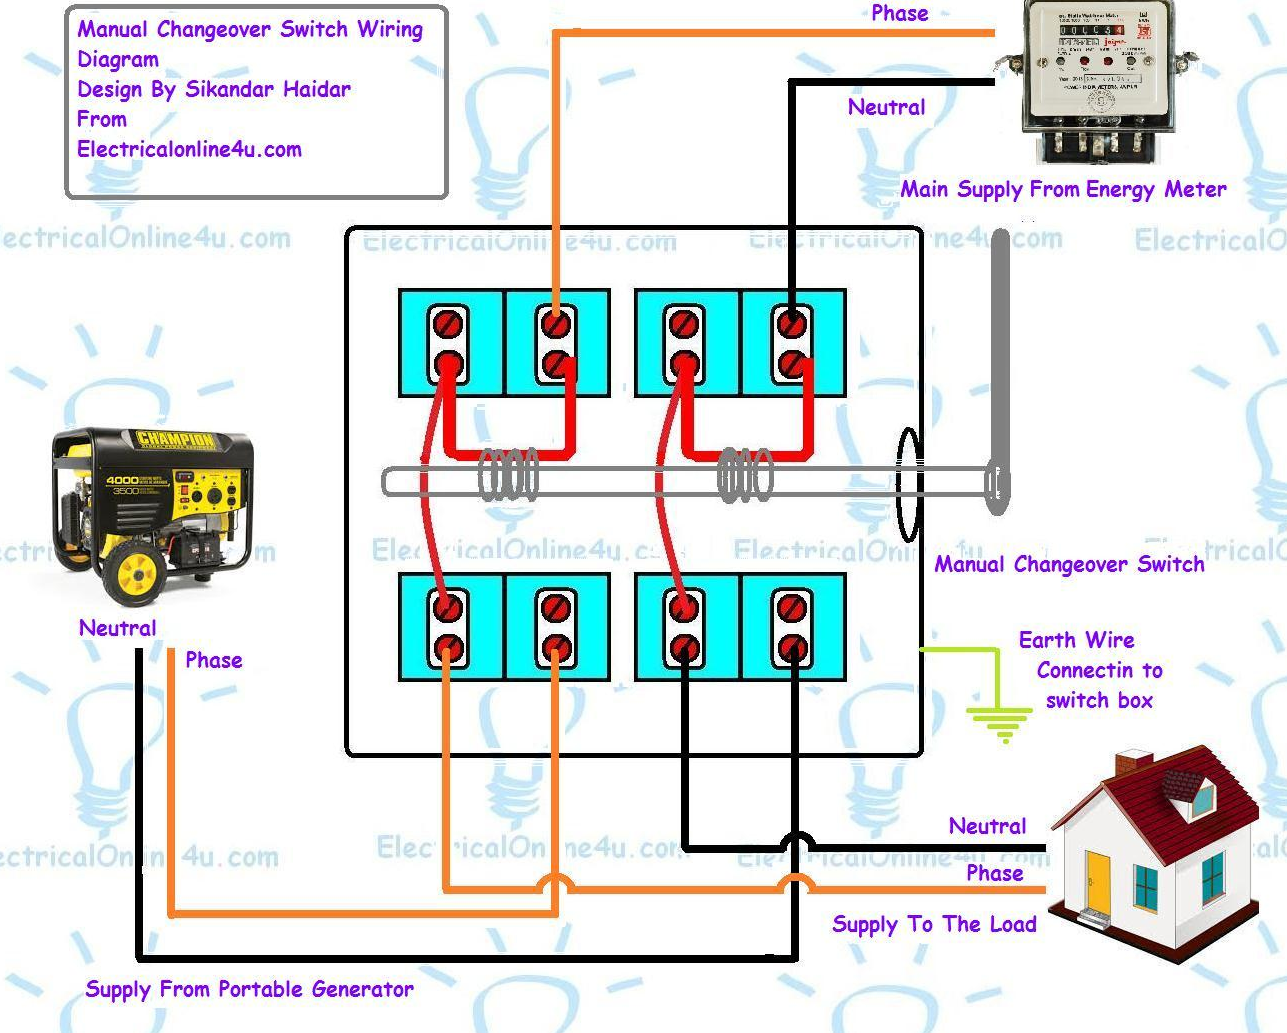 wiring diagram changeover switch generator wiring manual changeover switch wiring diagram for portable generator on wiring diagram changeover switch generator